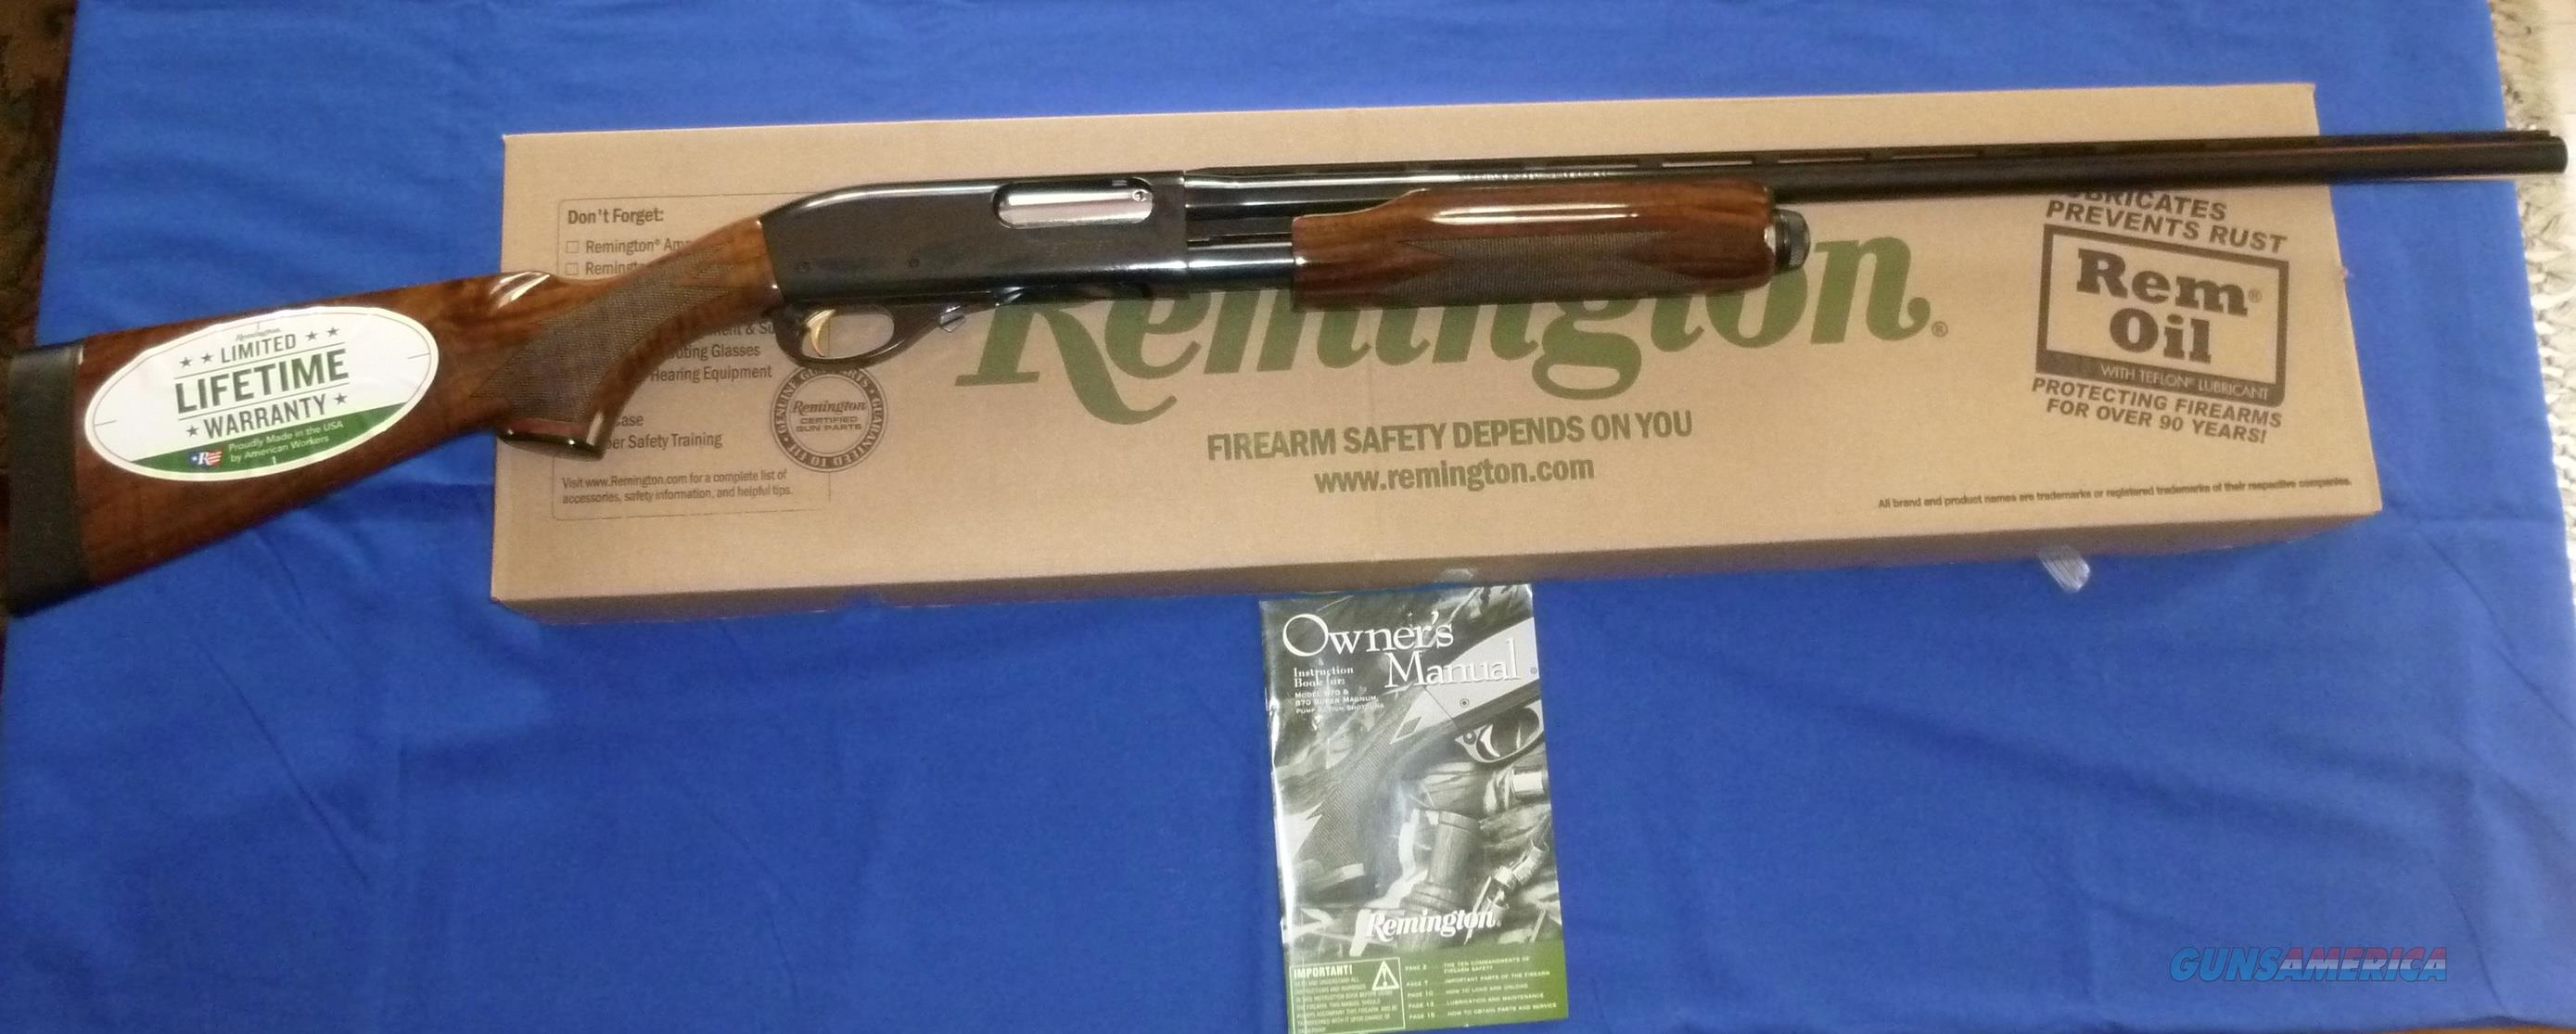 REMINGTON 870 WINGMASTER 12 GAUGE PUMP SHOTGUN WITH CLARO WALNUT WOOD  Guns > Shotguns > Remington Shotguns  > Pump > Hunting